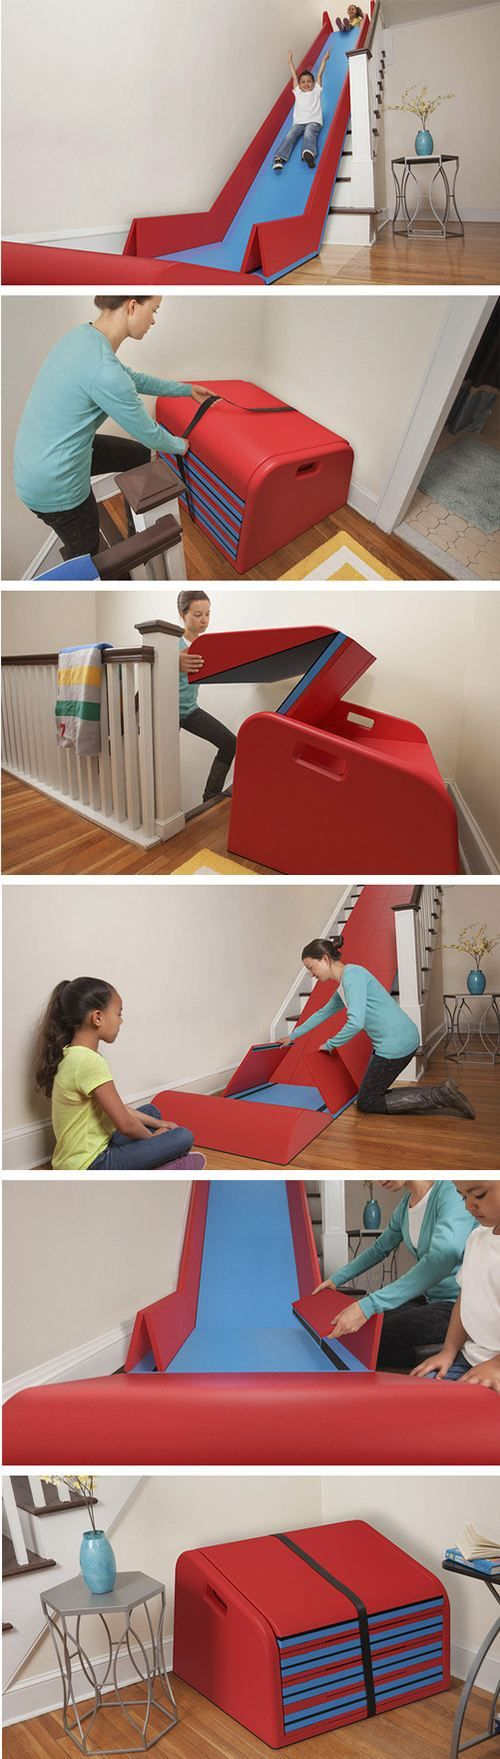 This is AWESOME! I need this! And a home with stairs.